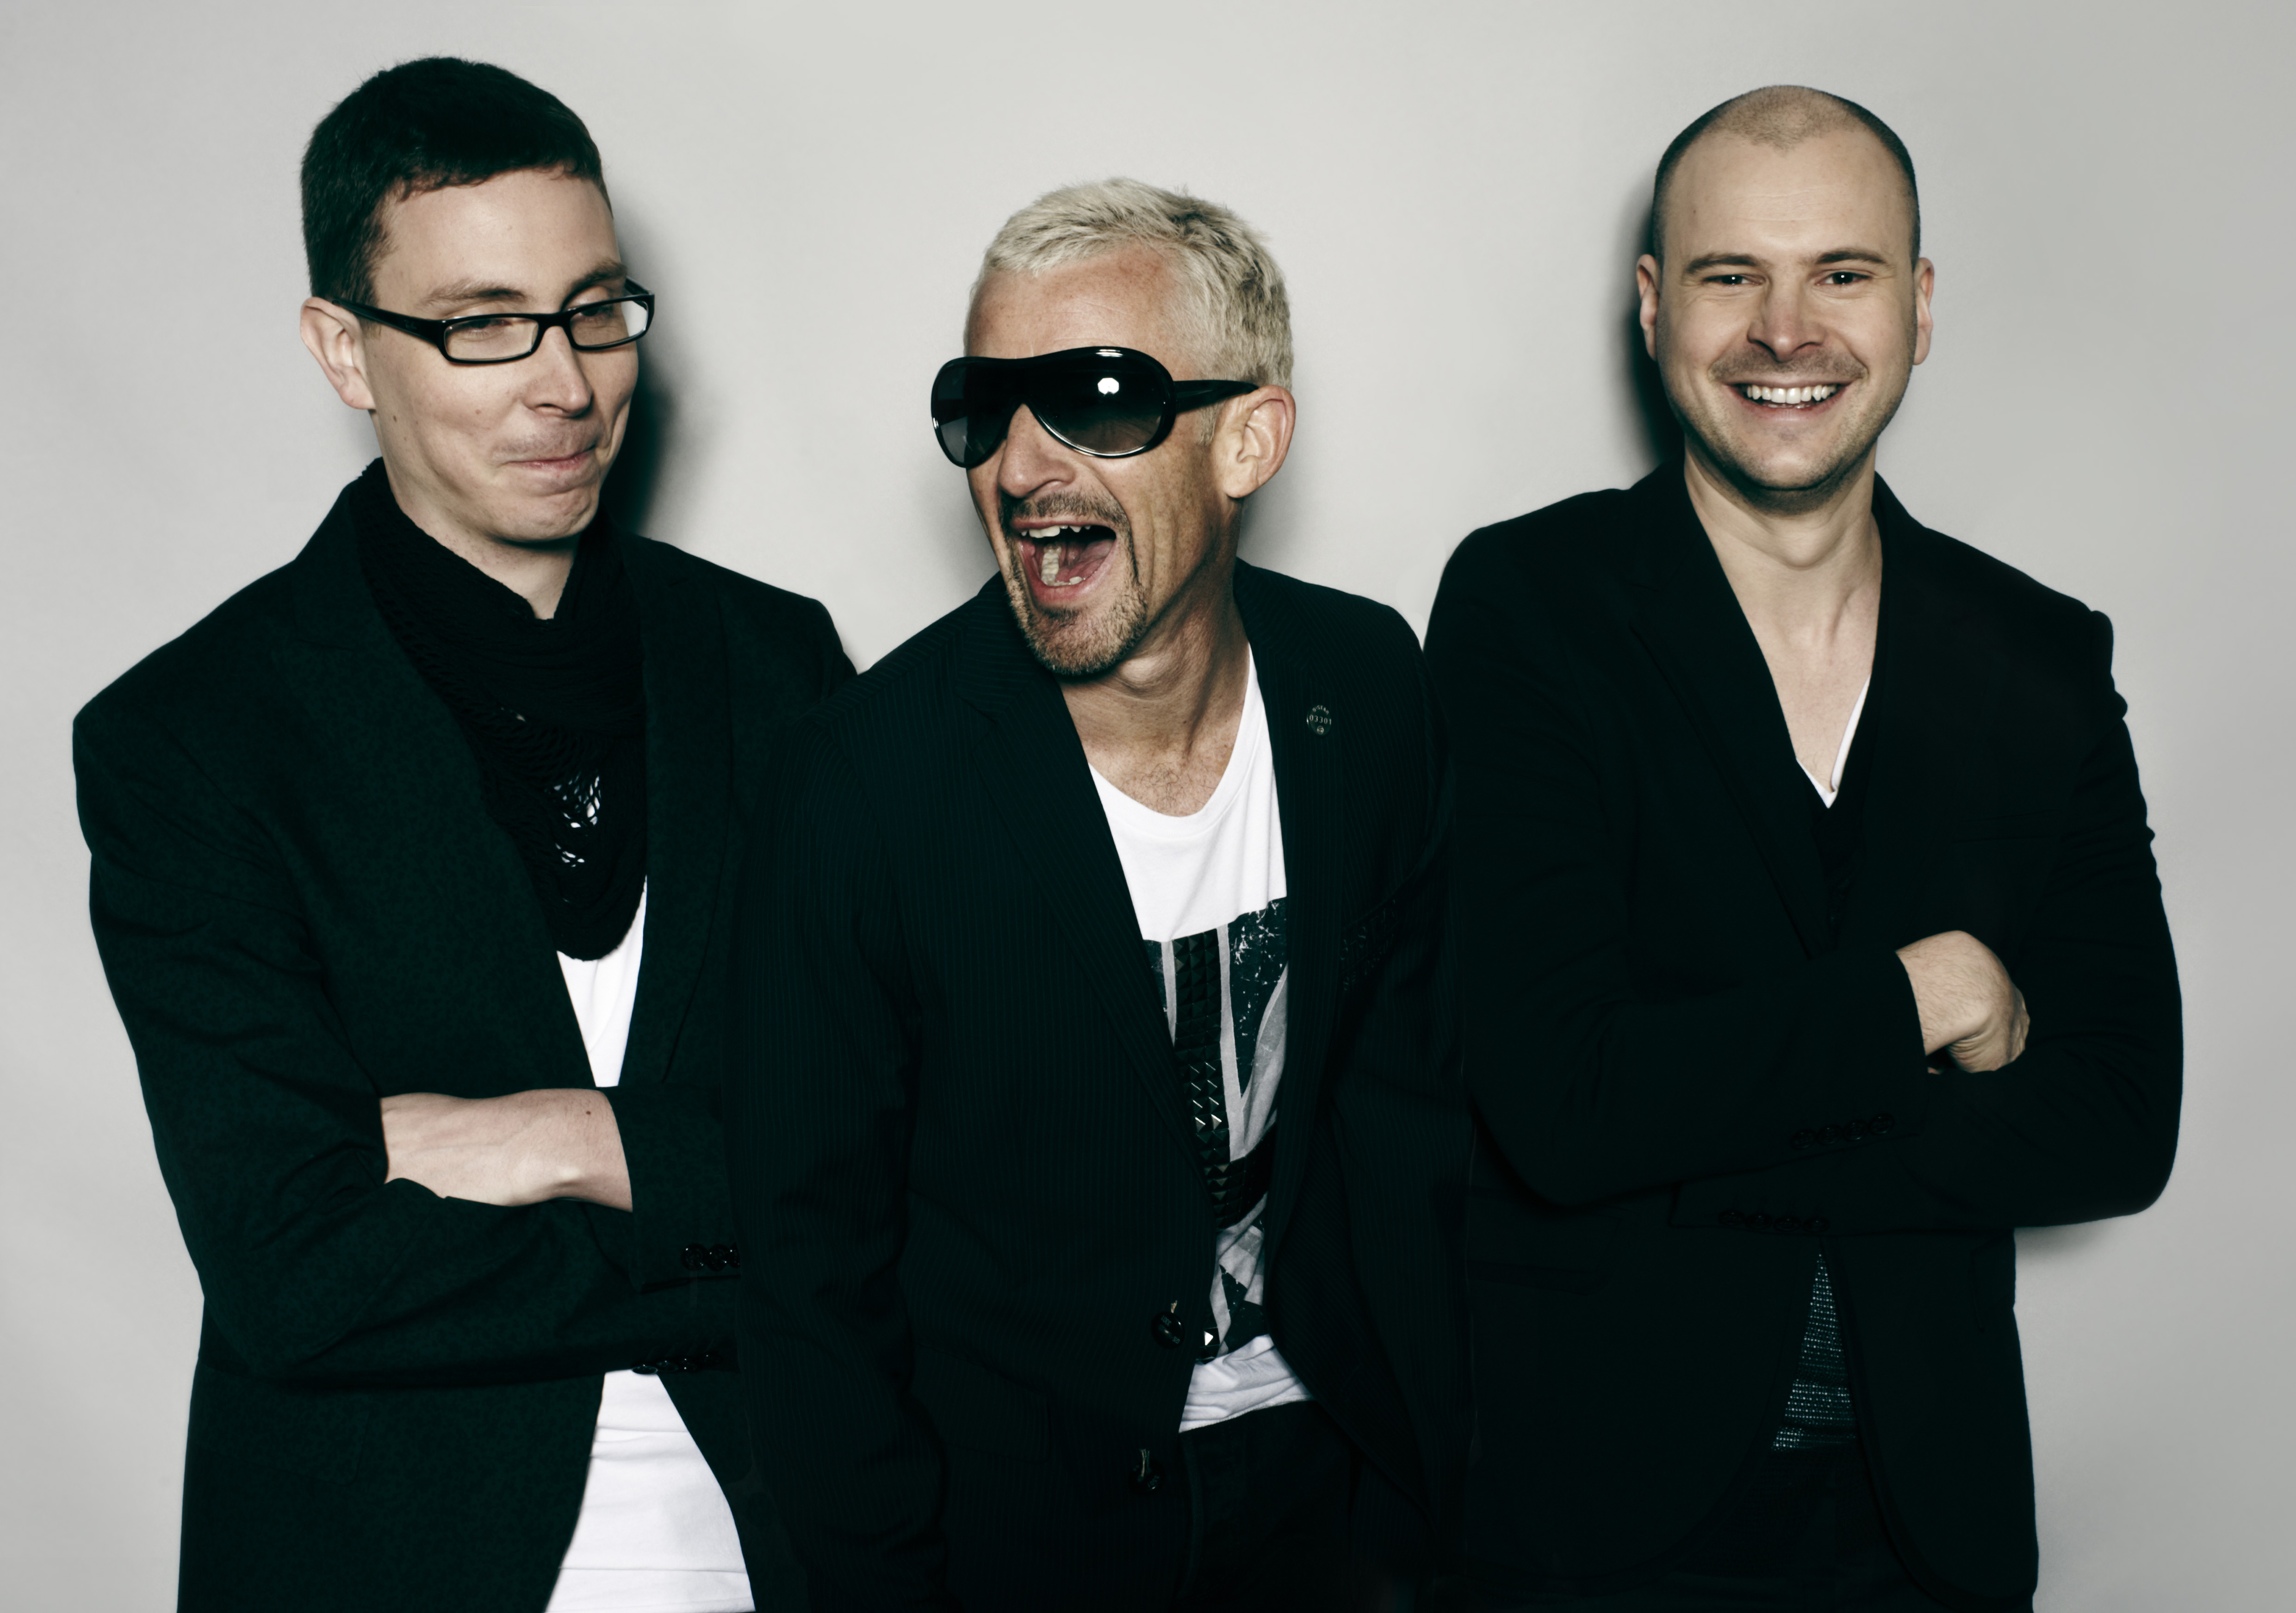 Exclusive pre-order of Above & Beyond Acoustic Documentary available now on iTunes